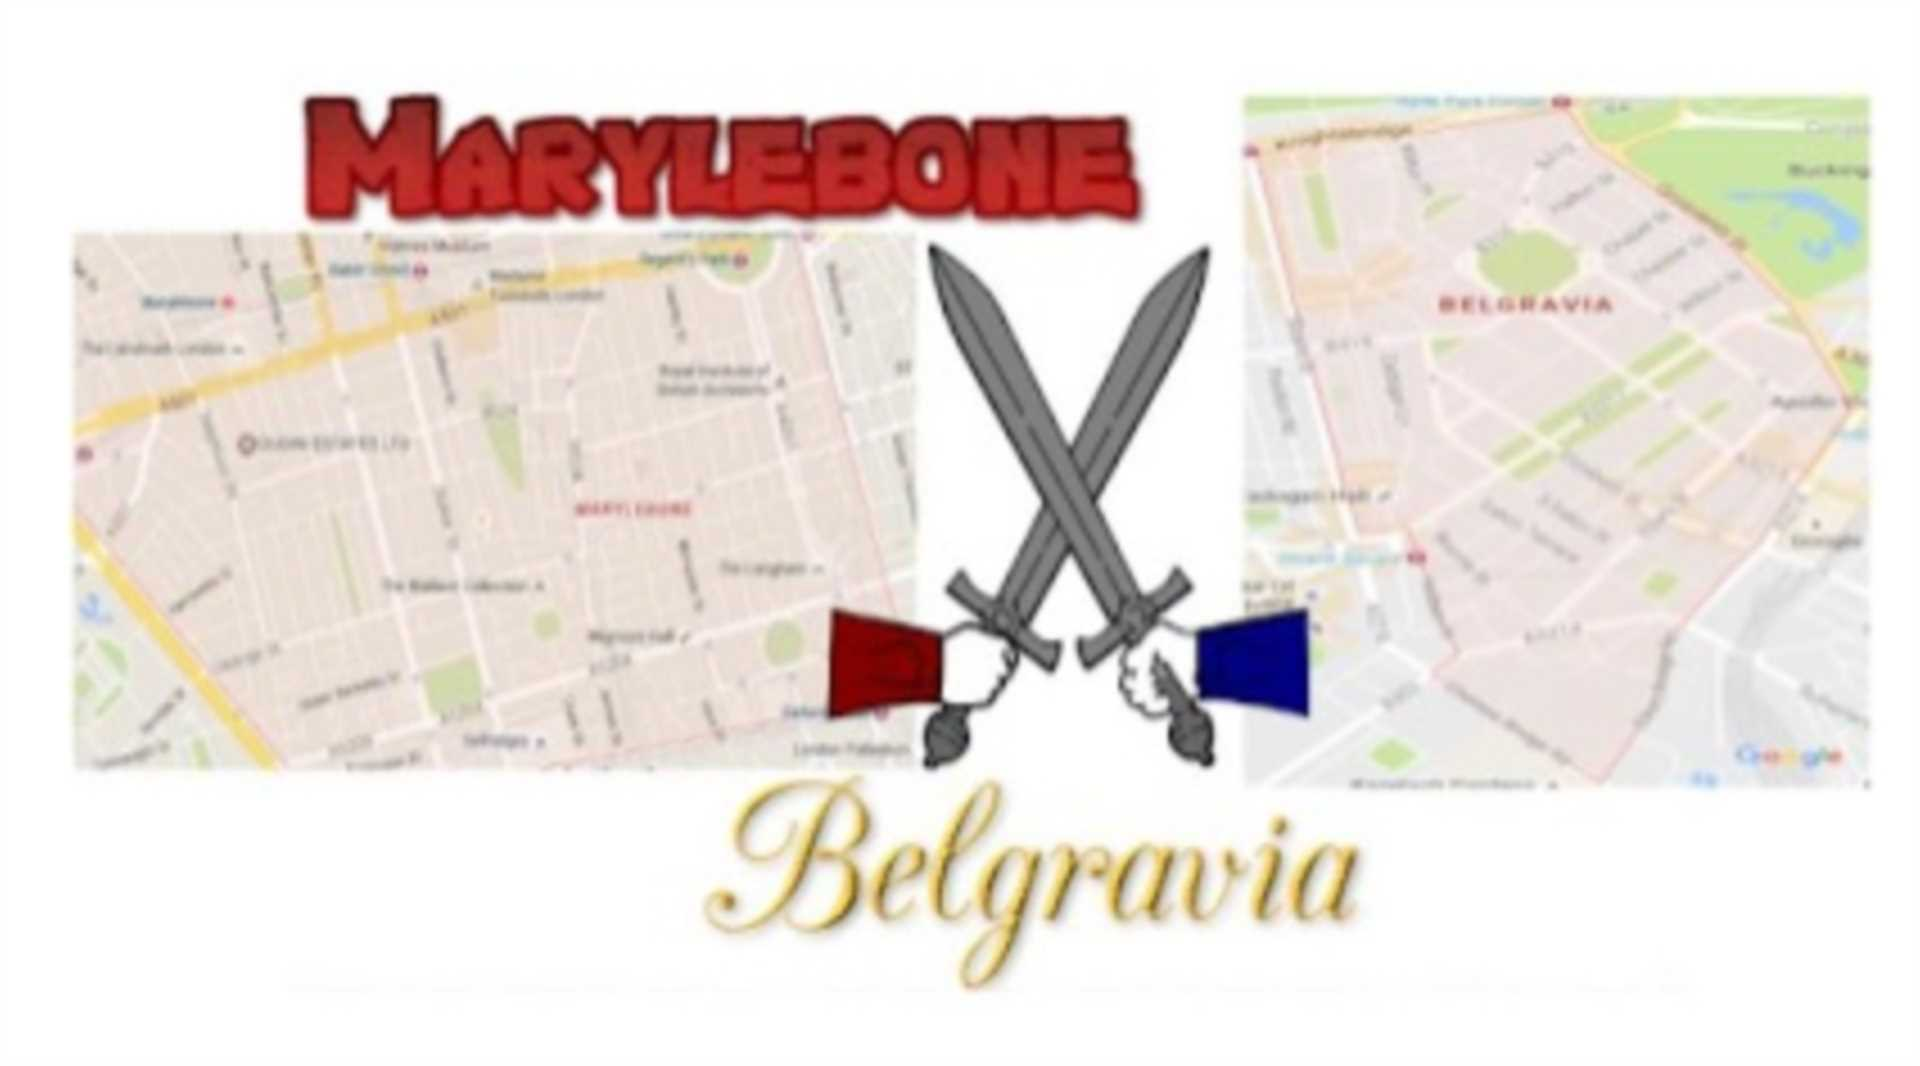 Marylebone VS their elite London rivals Belgravia – how far is the gap between property values as well as rental prices between the two areas, and what sort of capital growth rates have we witnessed over the last year?